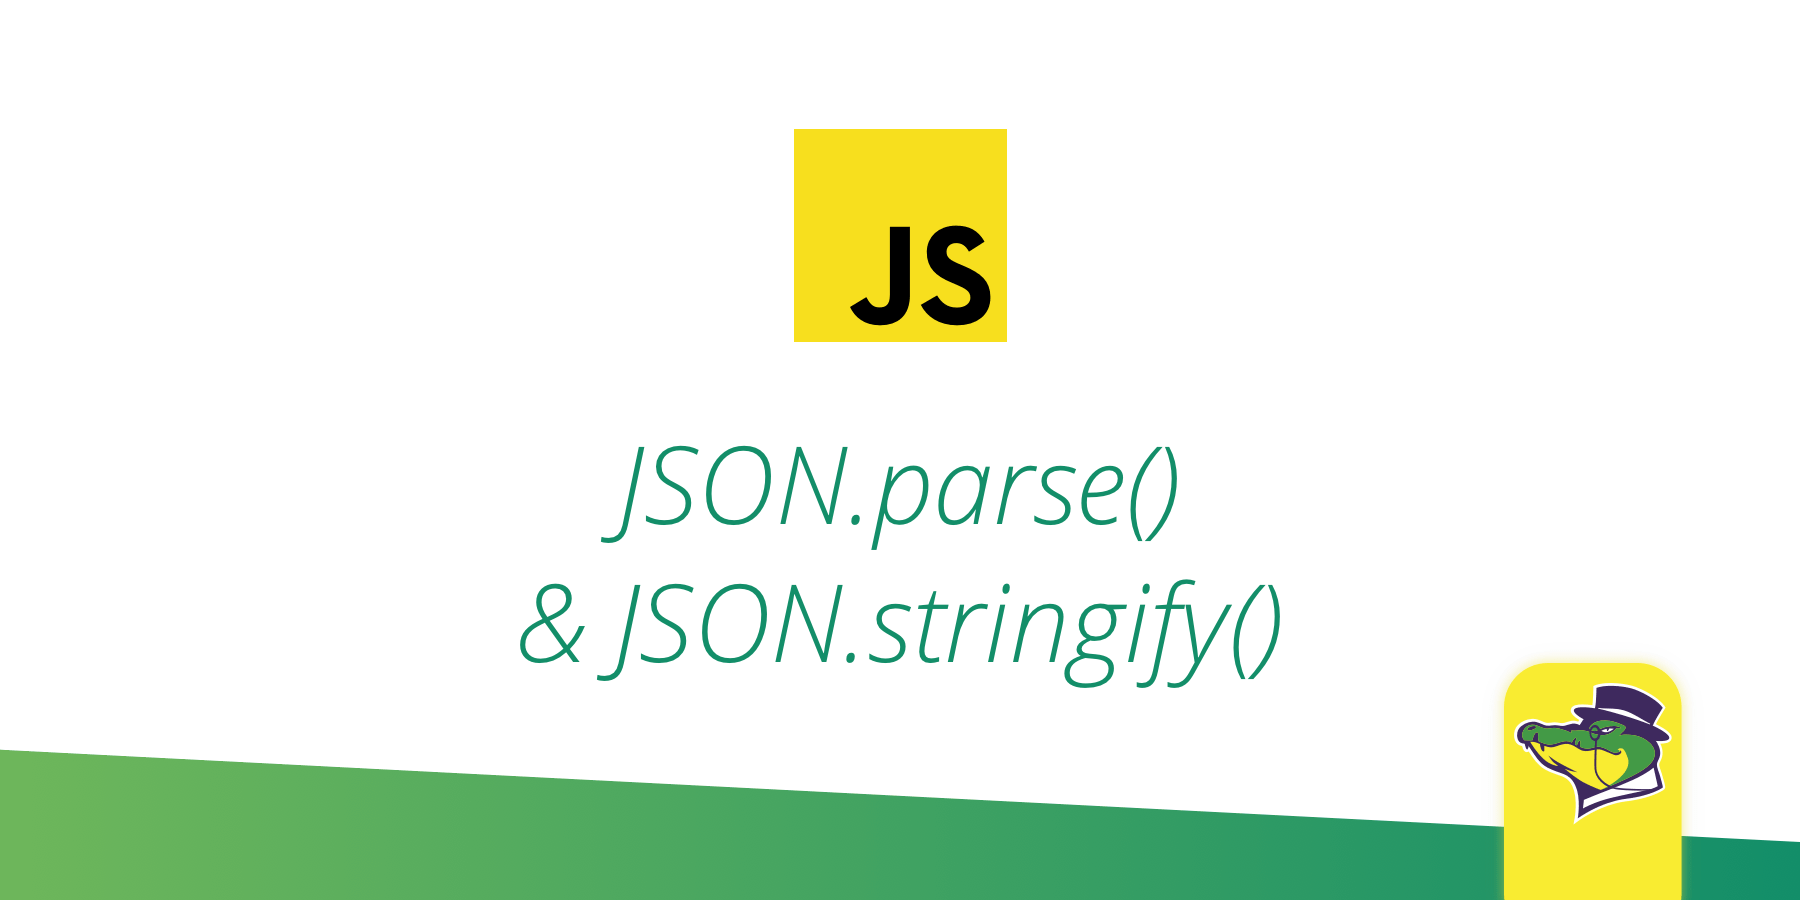 دستور JSON.strinigfy()